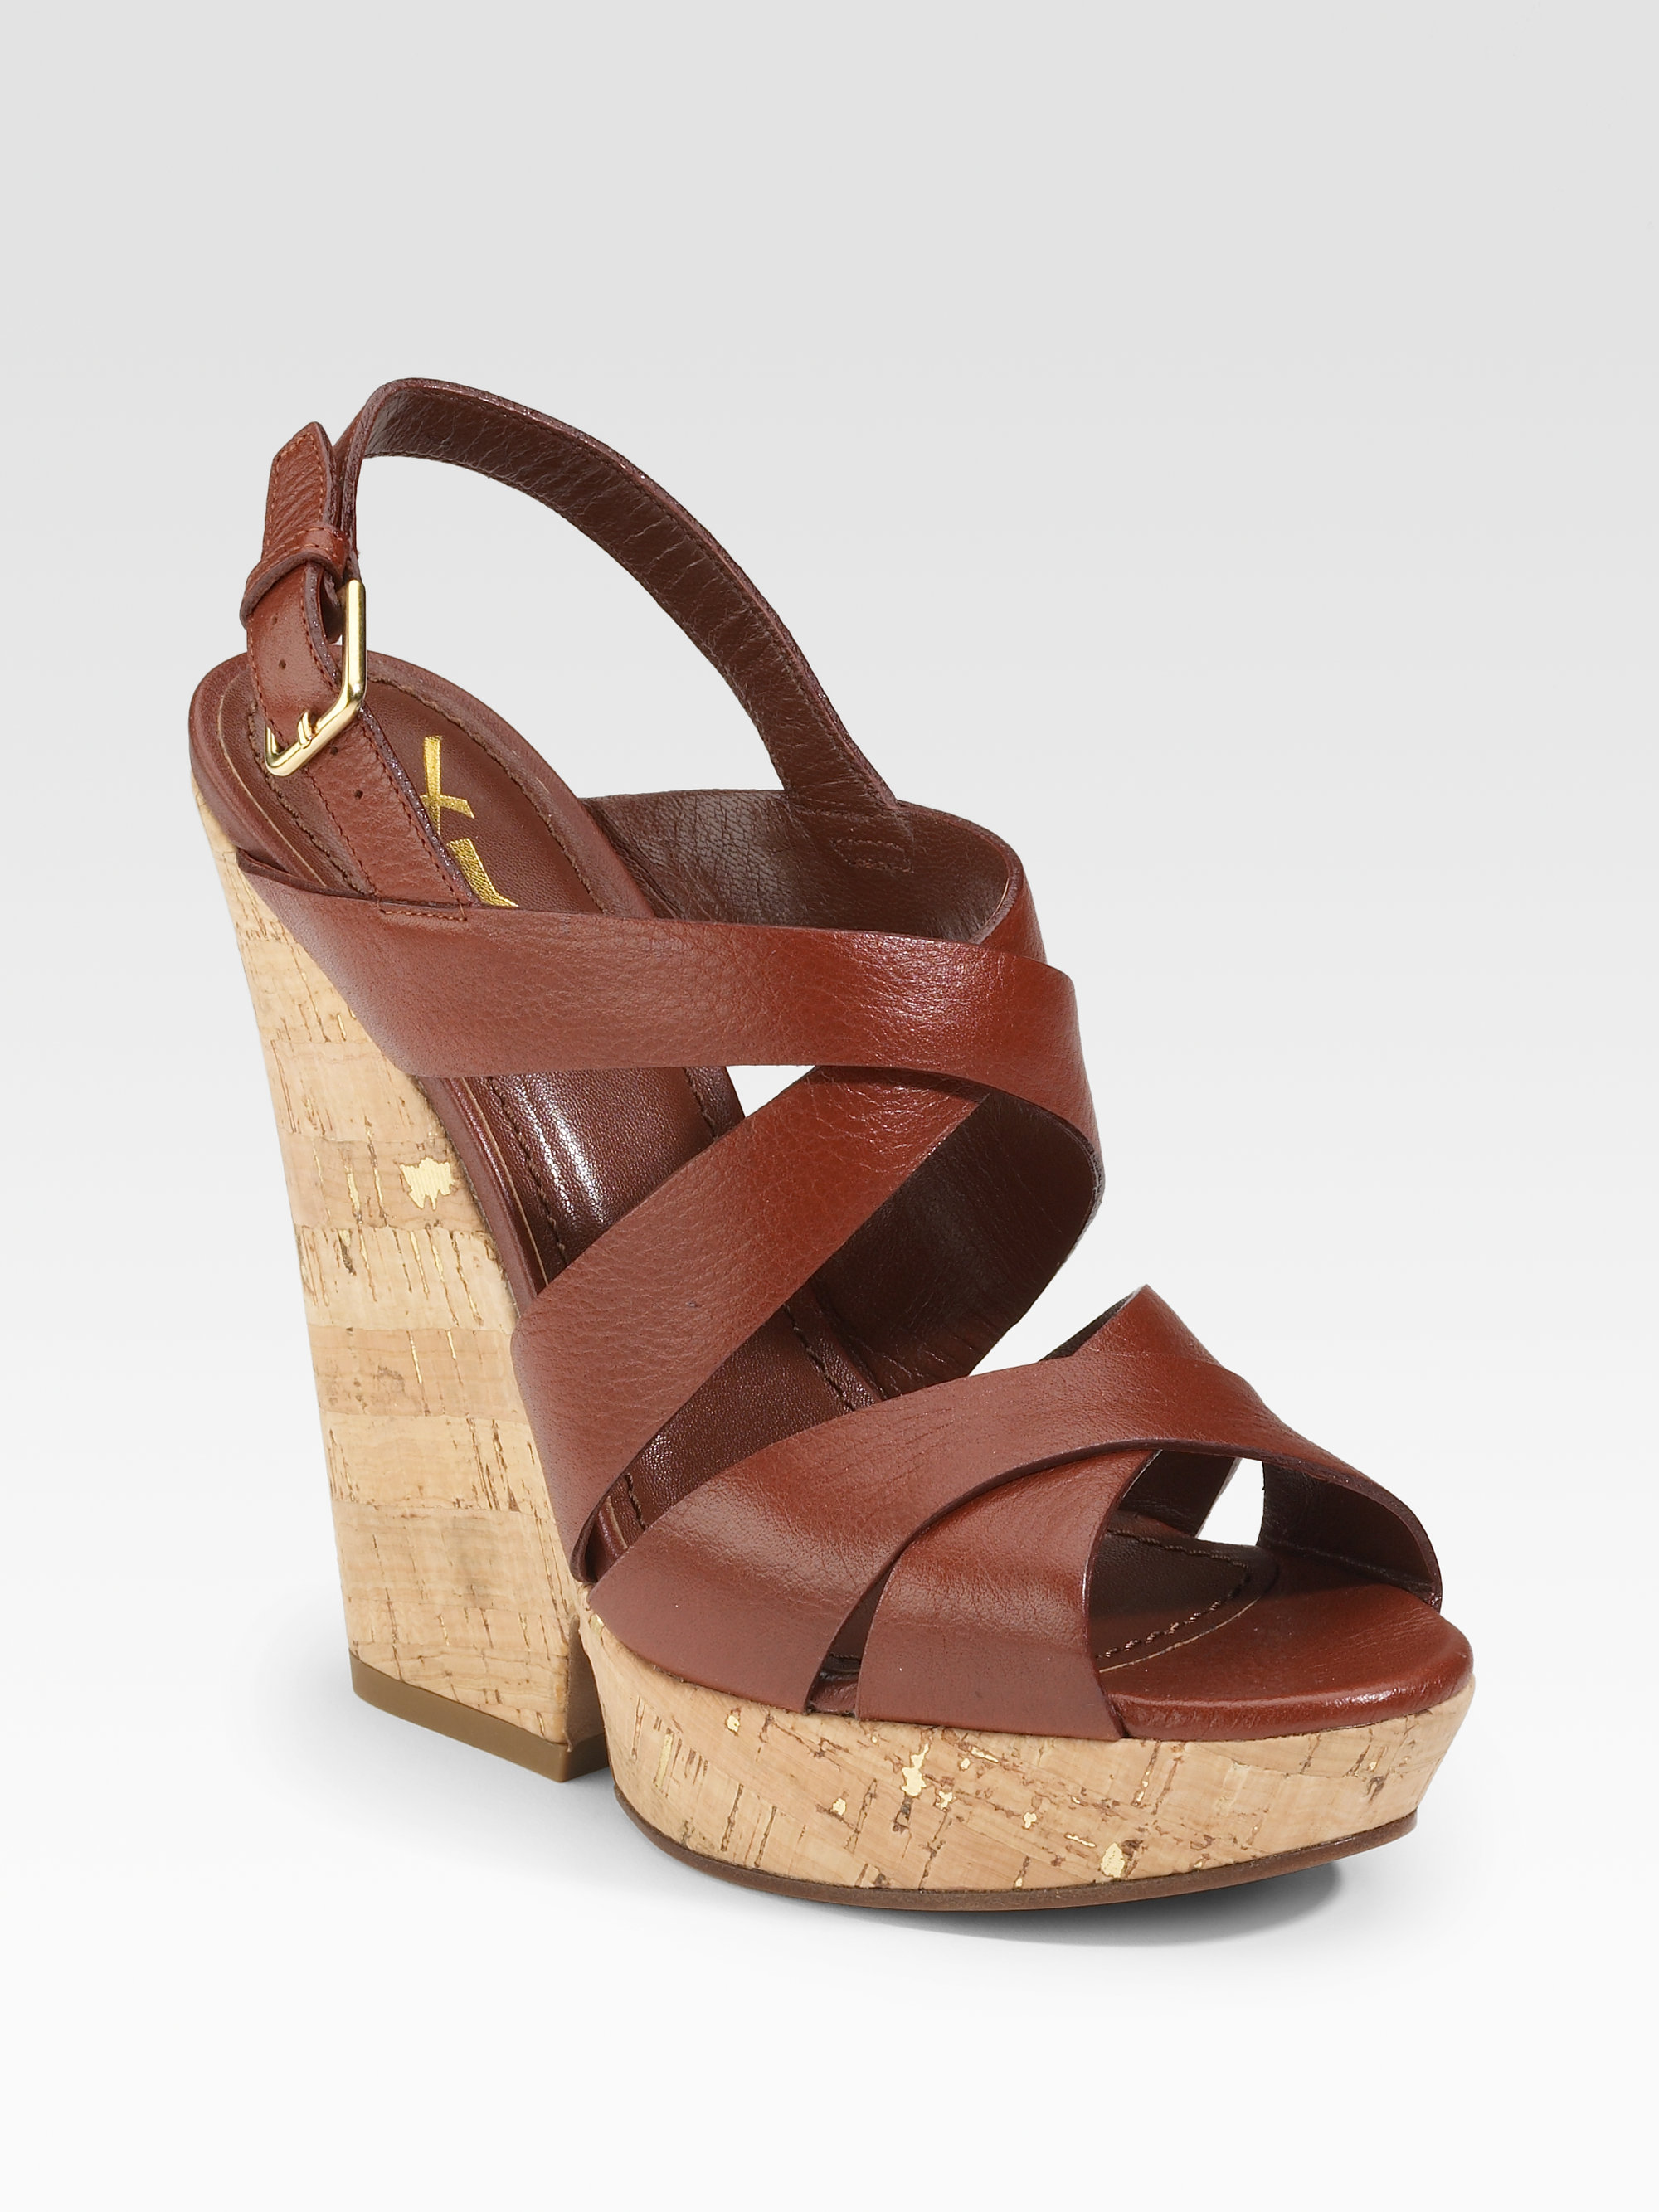 a067e13c1 Saint Laurent Deauville Strappy Wedge Sandals in Brown - Lyst